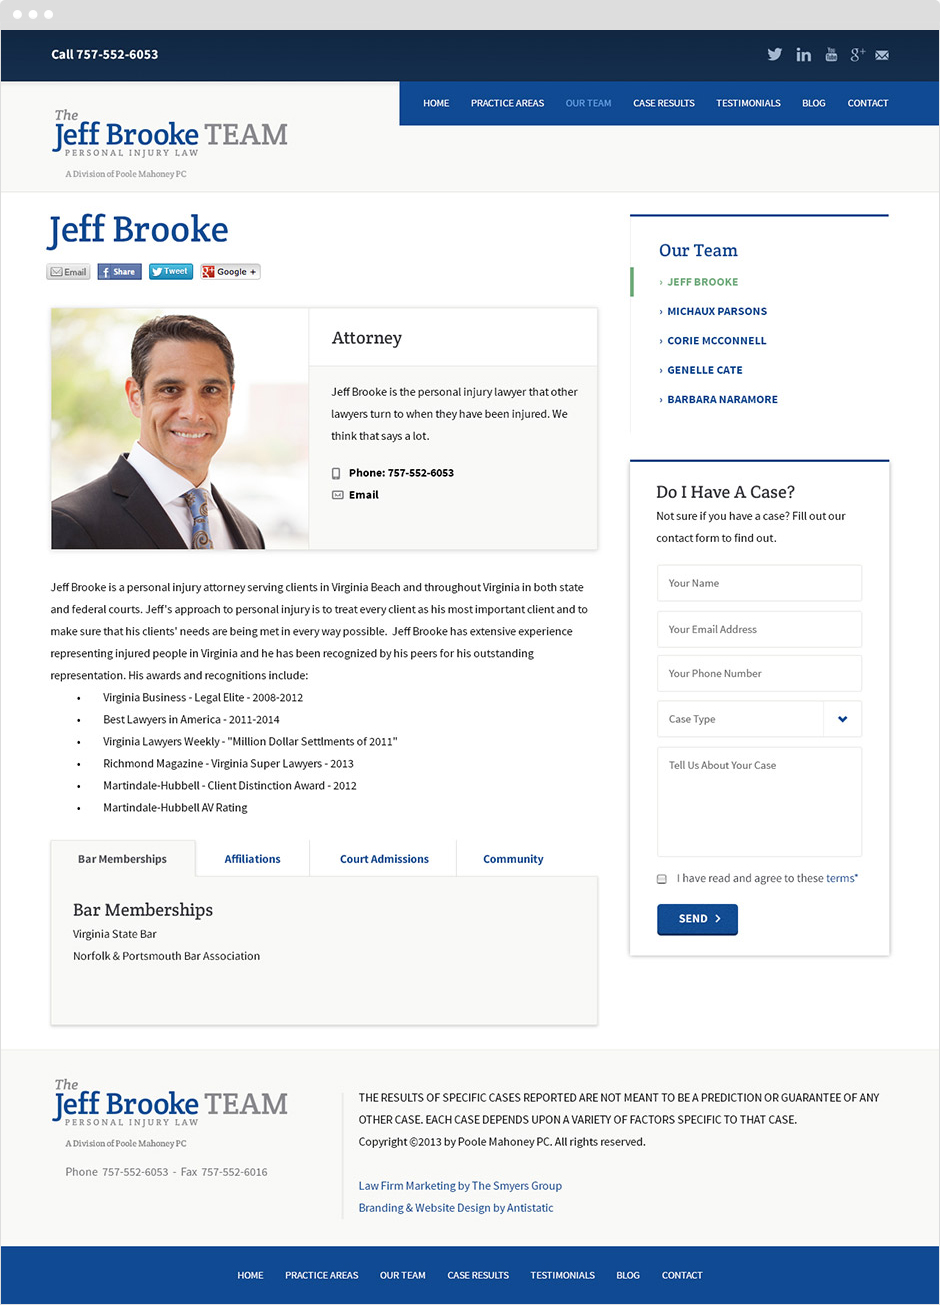 Jeff Brooke Team Homepage Design